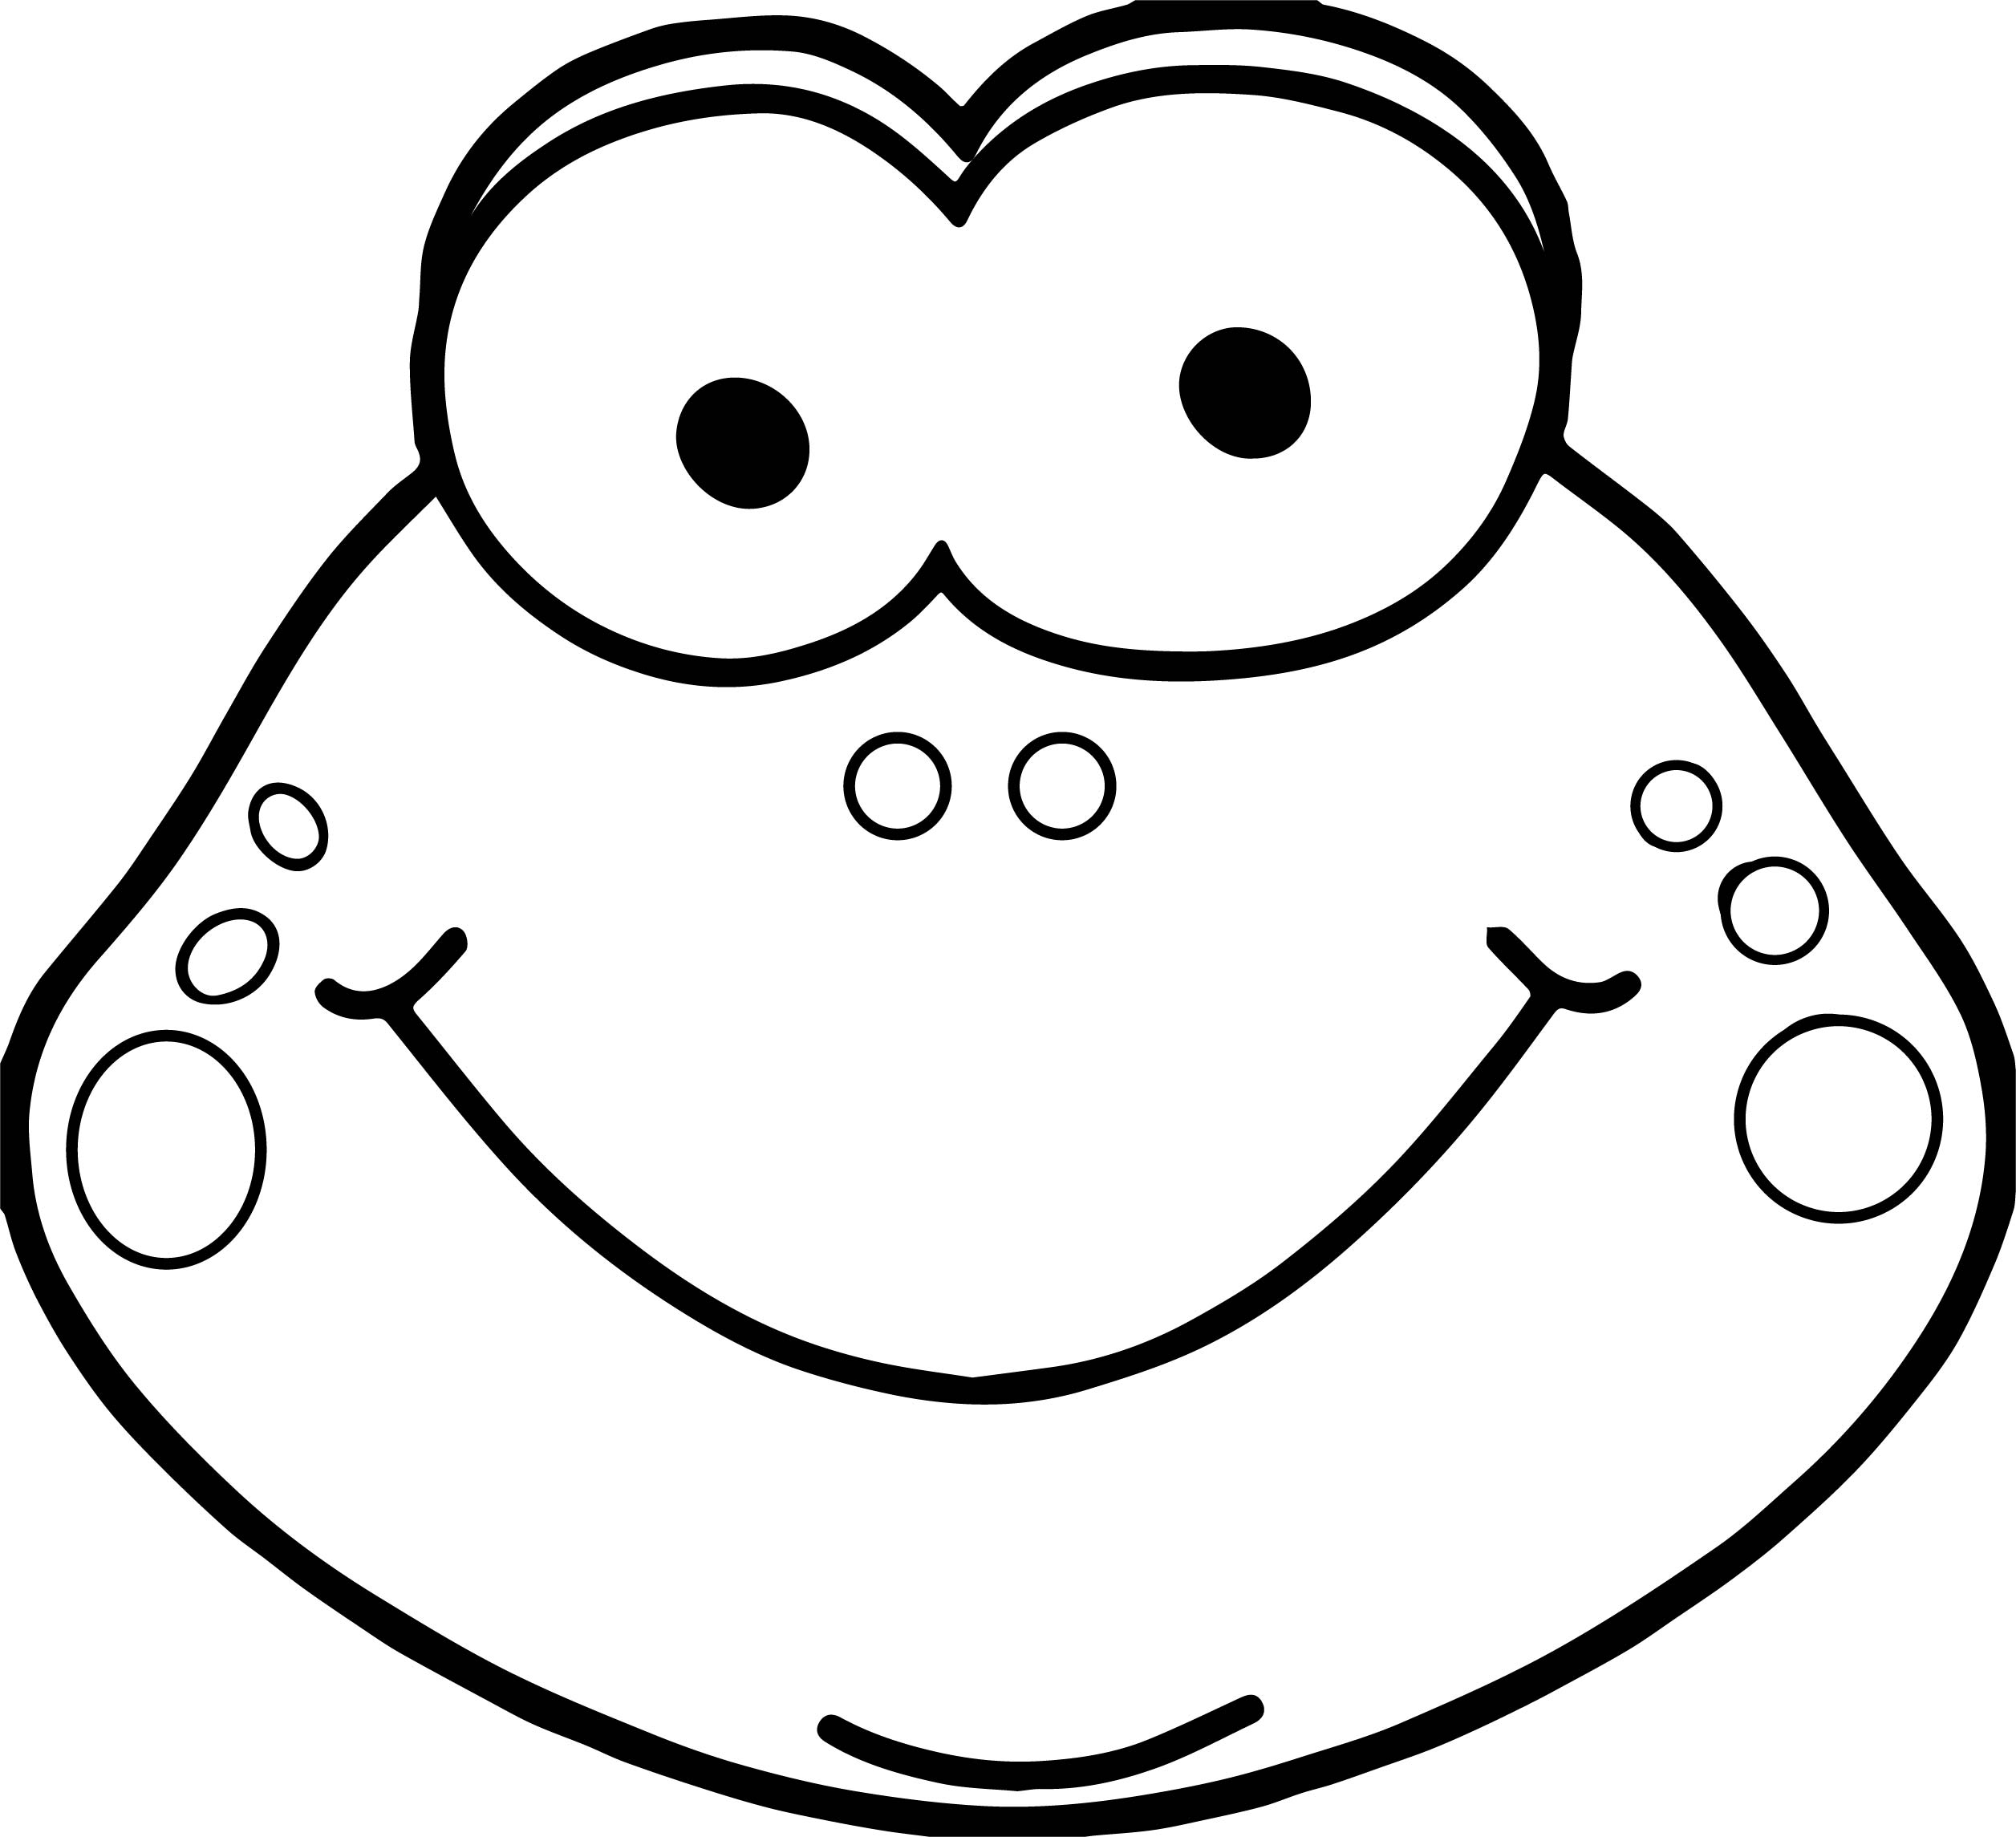 frog face coloring page face frog coloring pages print coloring 2019 page frog face coloring